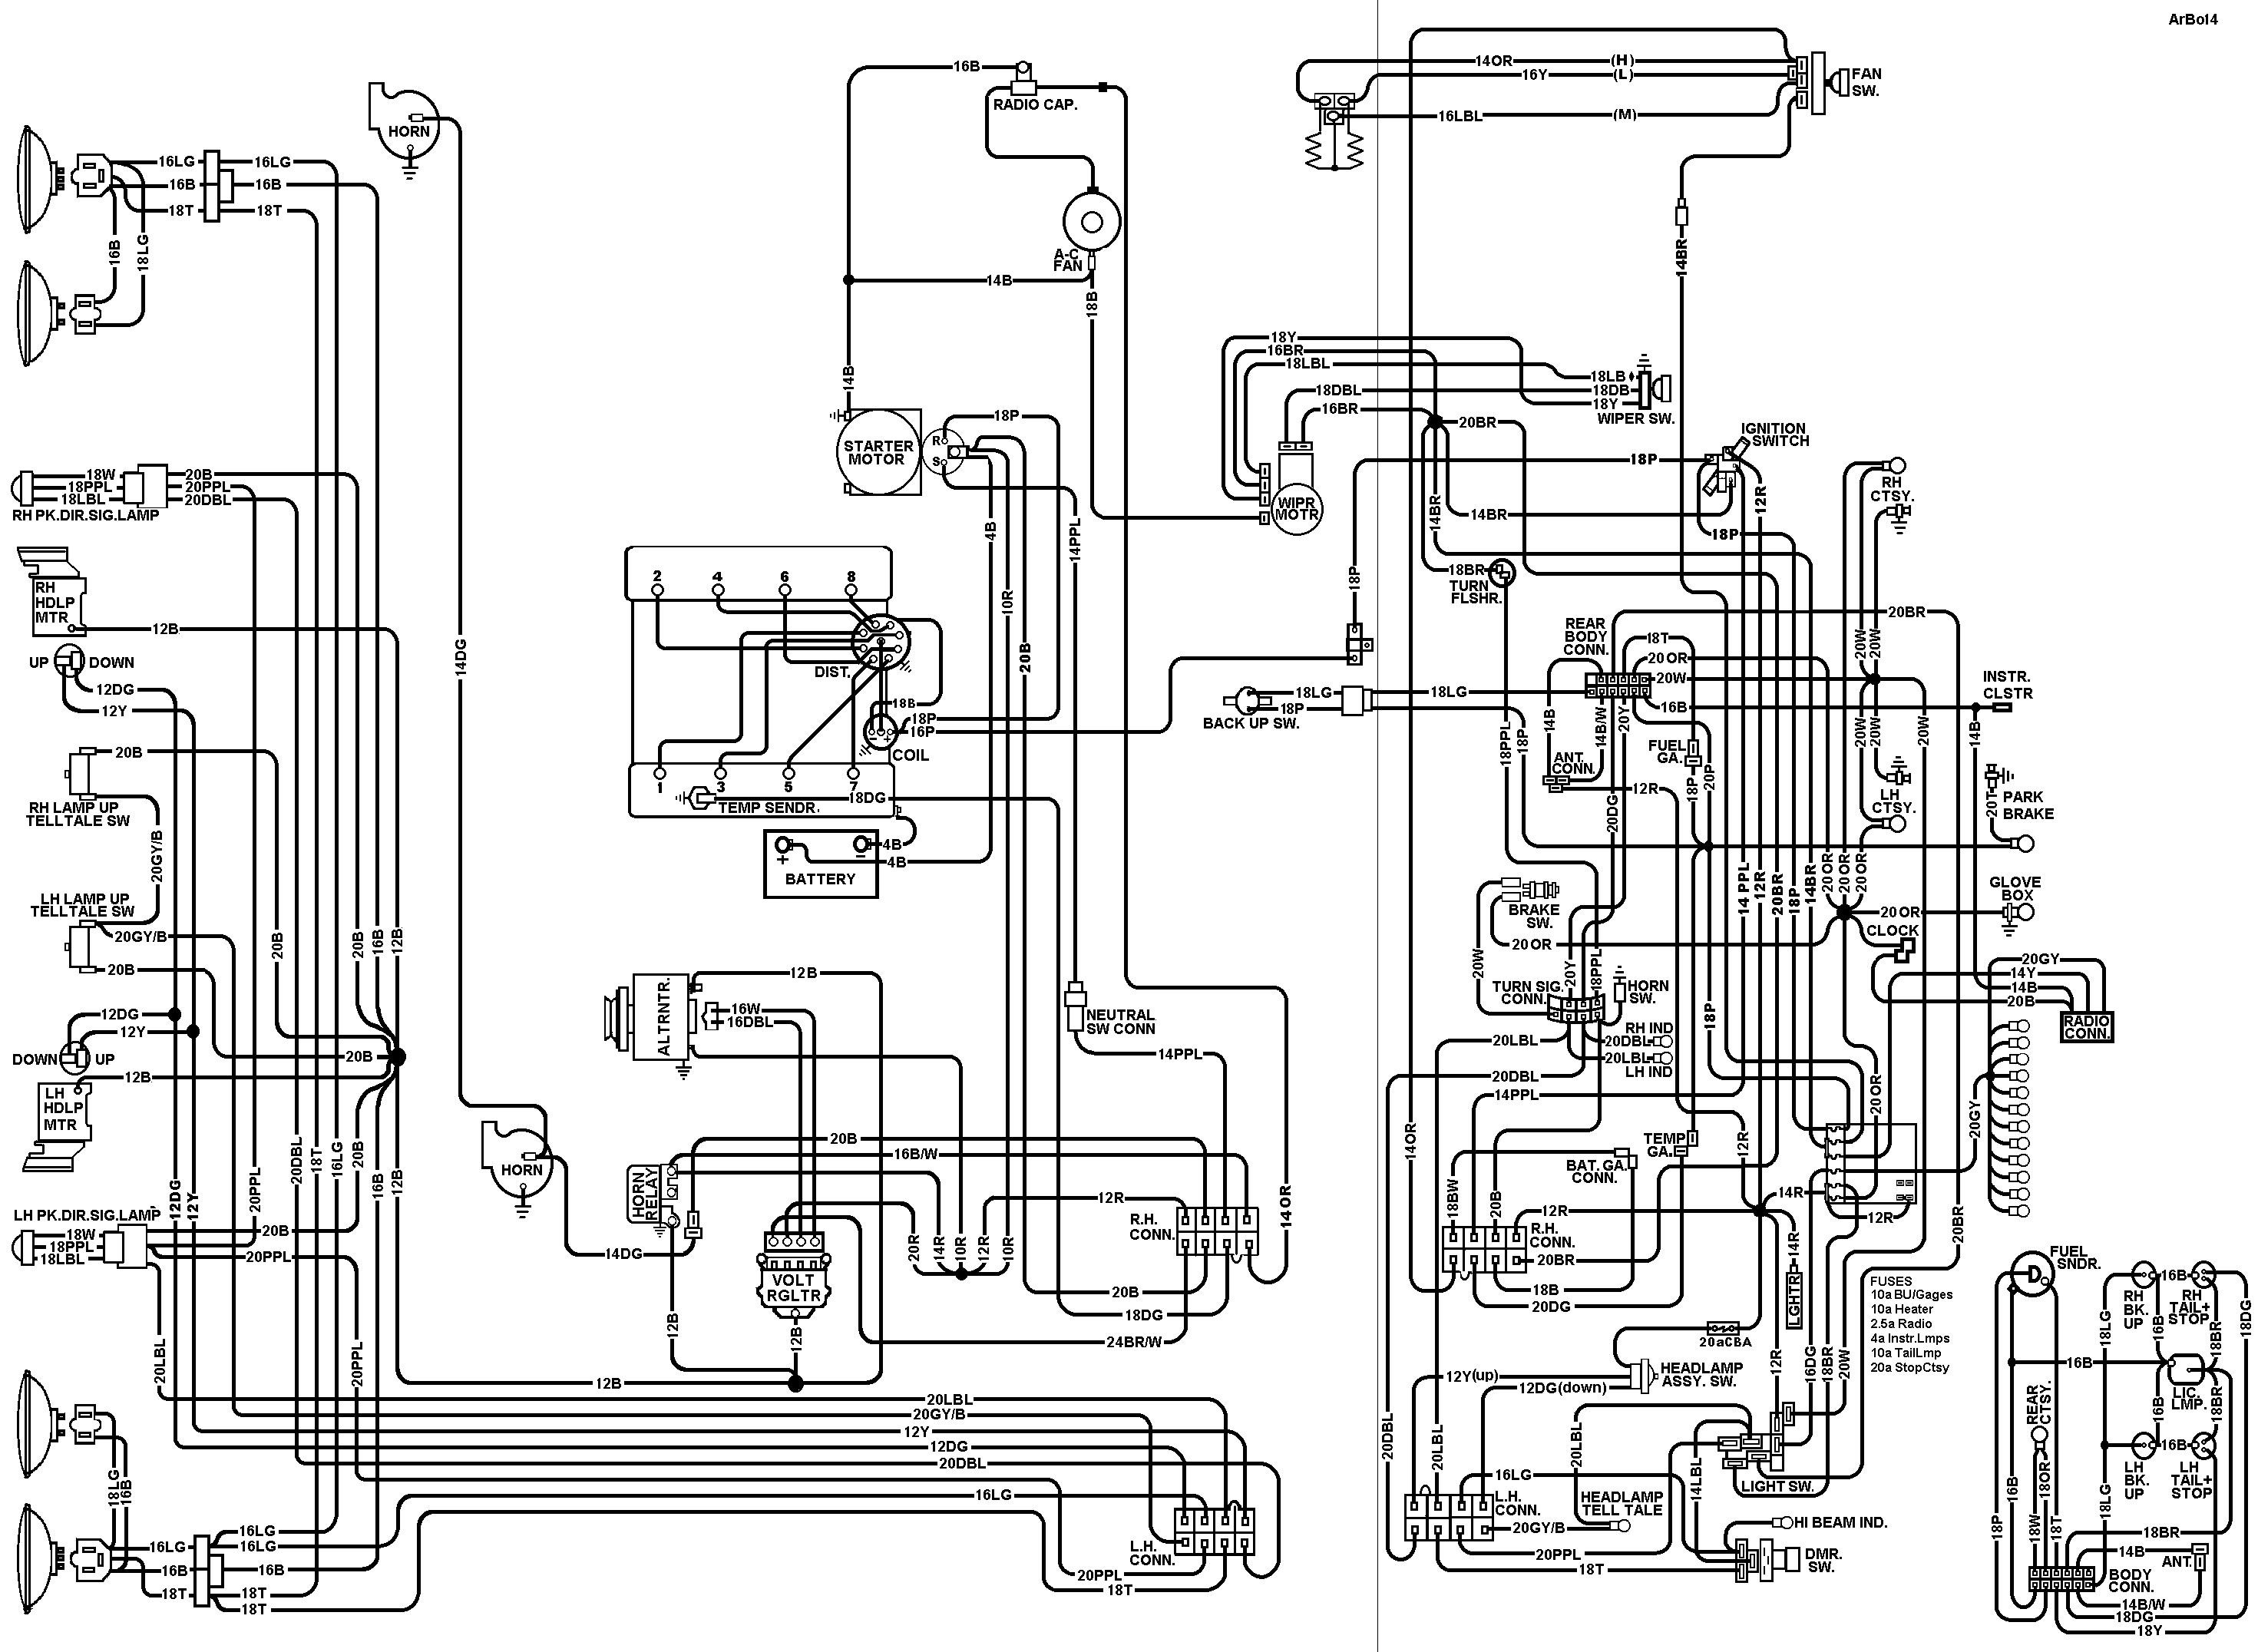 wiring harness for 1974 corvette wire center u2022 rh linxglobal co 1974 Corvette Wiring Diagram PDF wiring diagram for 1974 corvette